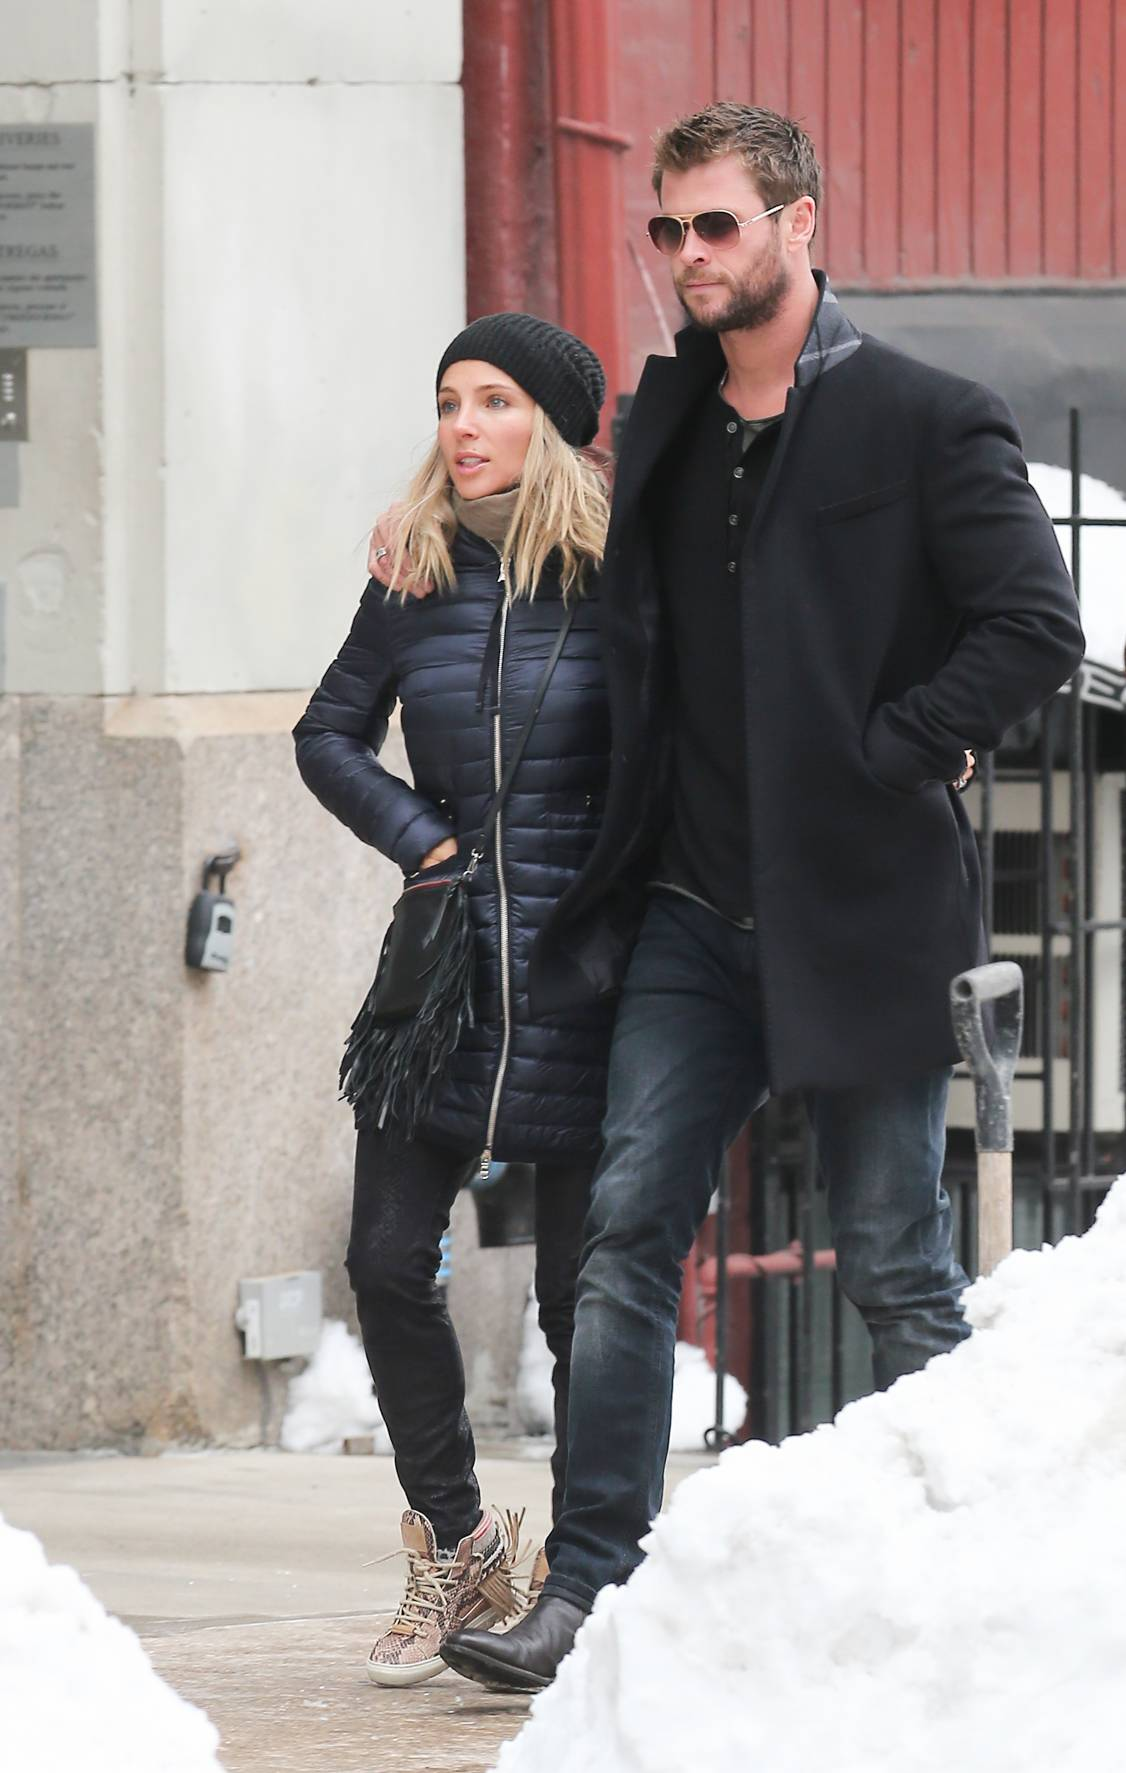 Chris Hemsworth and Elsa Pataky Romantic Stroll in NYC-3